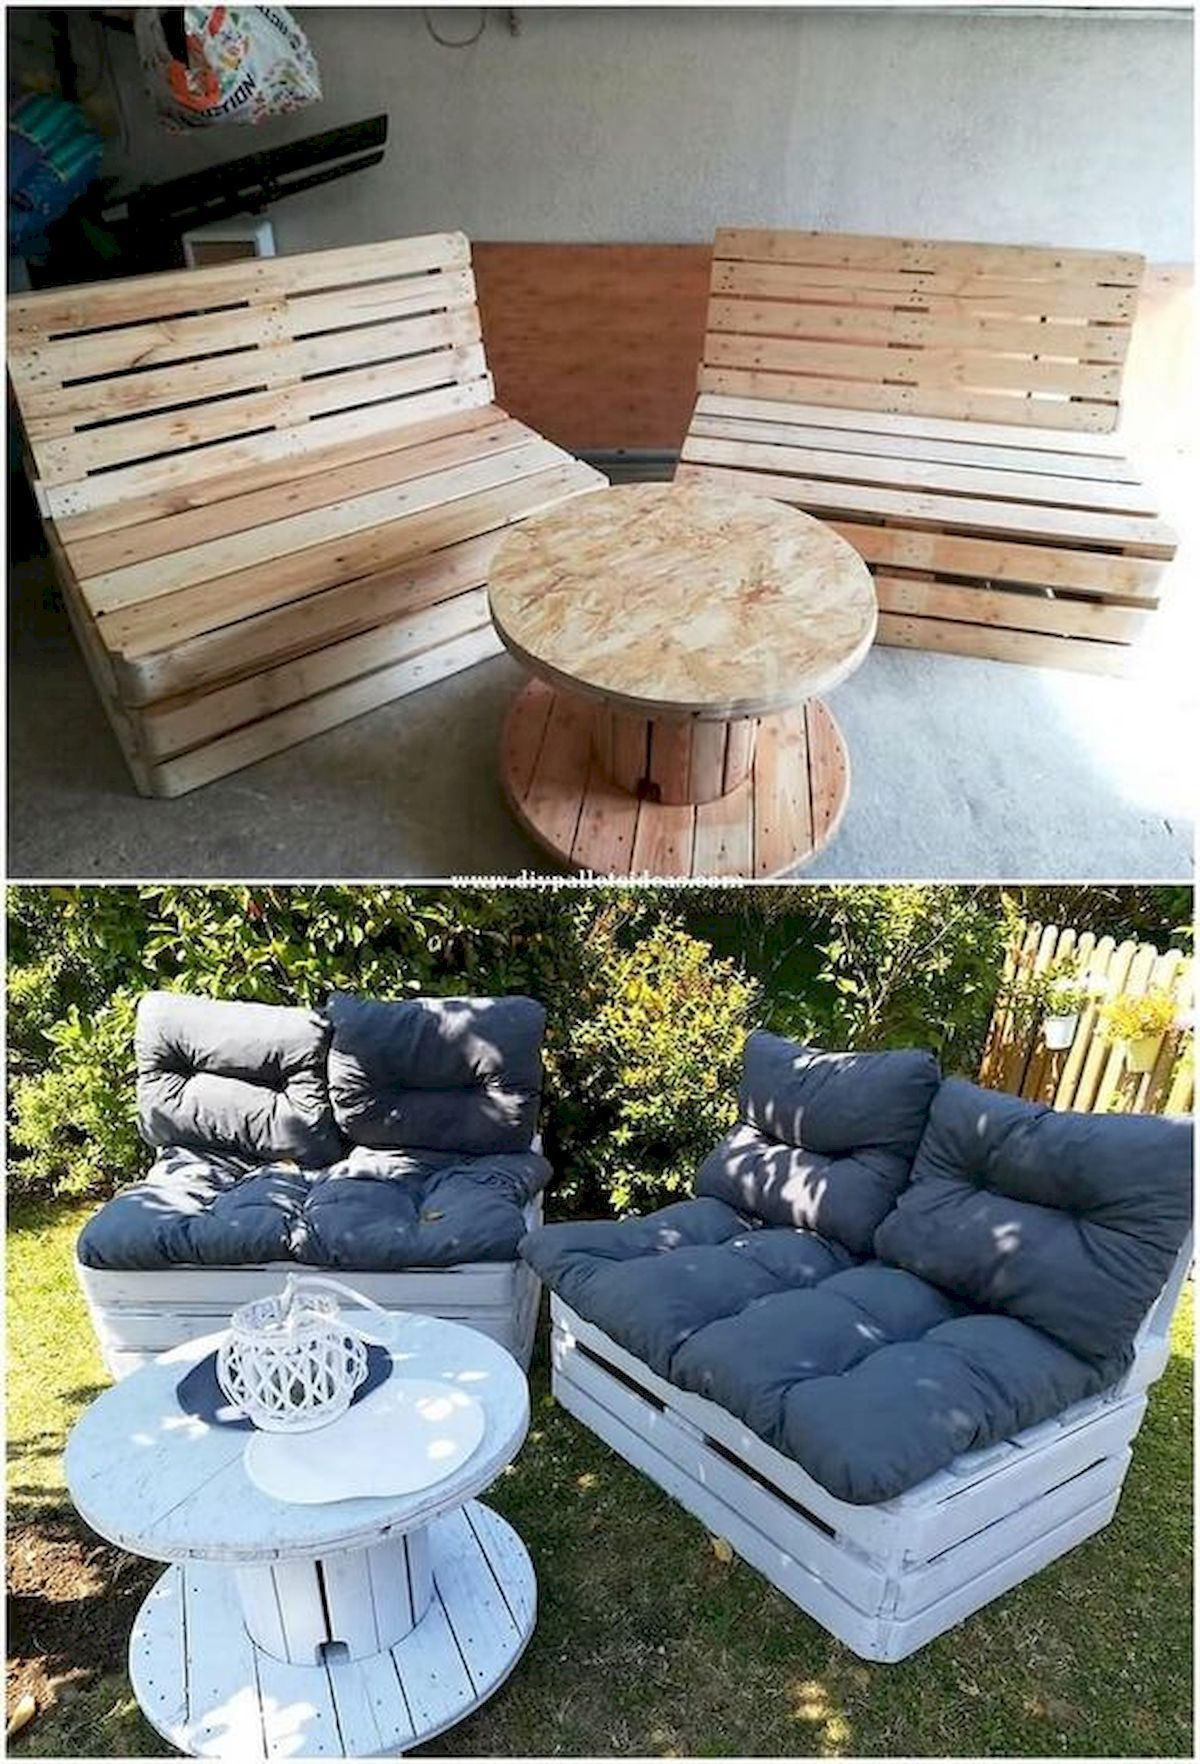 30 creative diy wooden pallet projects ideas with images